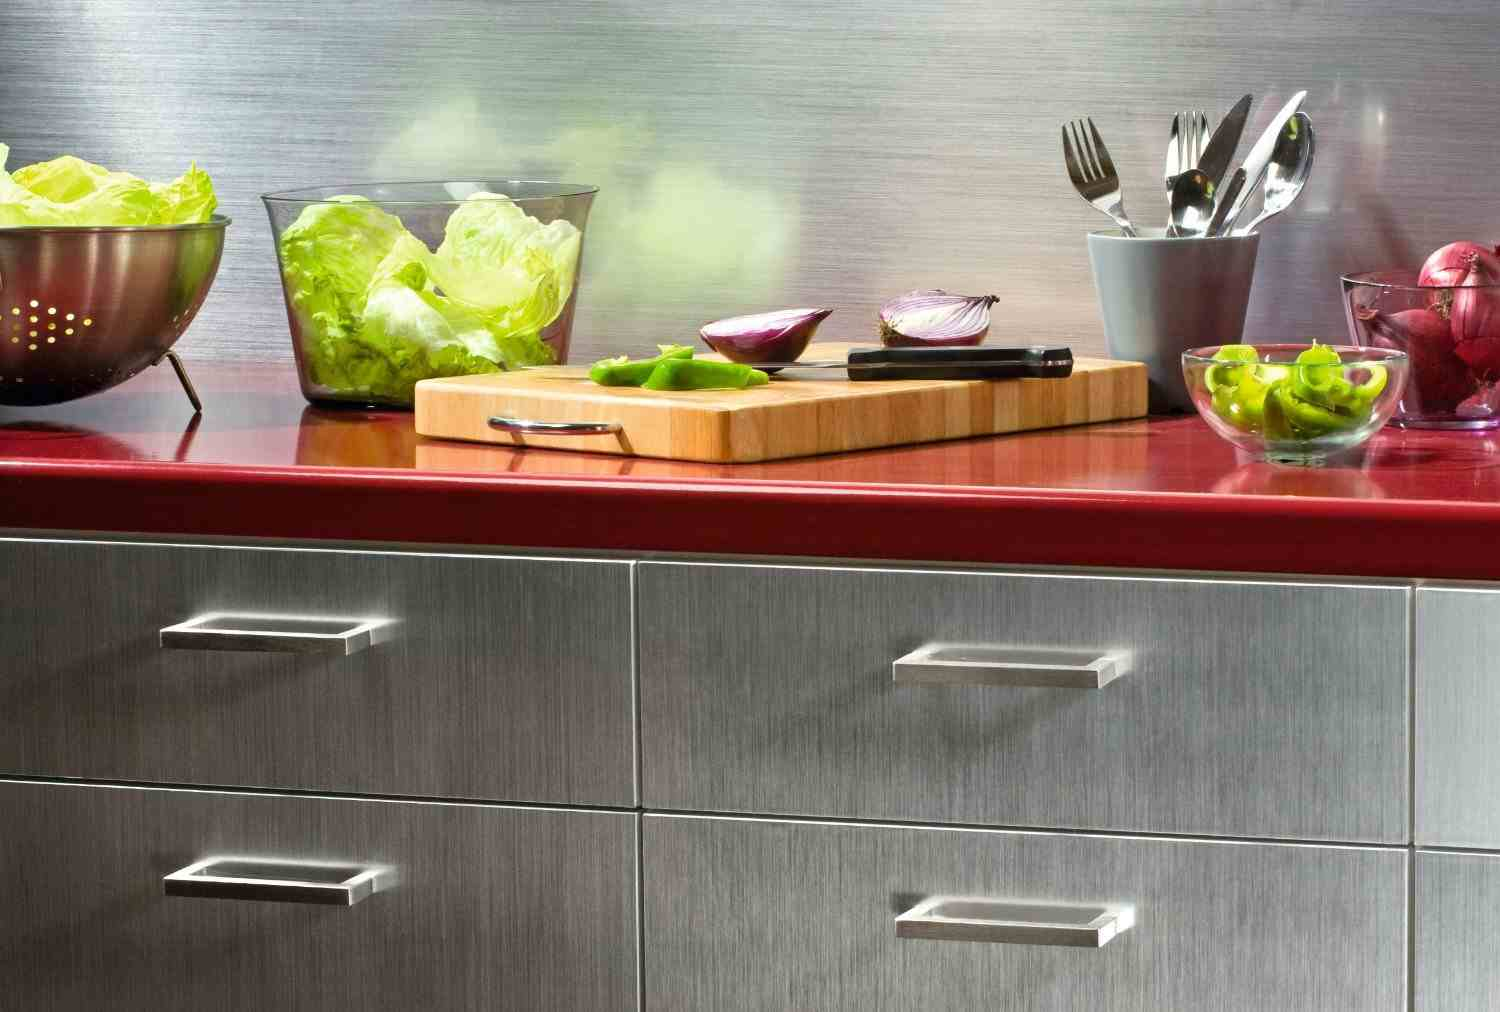 5 diy stainless steel kitchen makeovers on the cheap - do-it